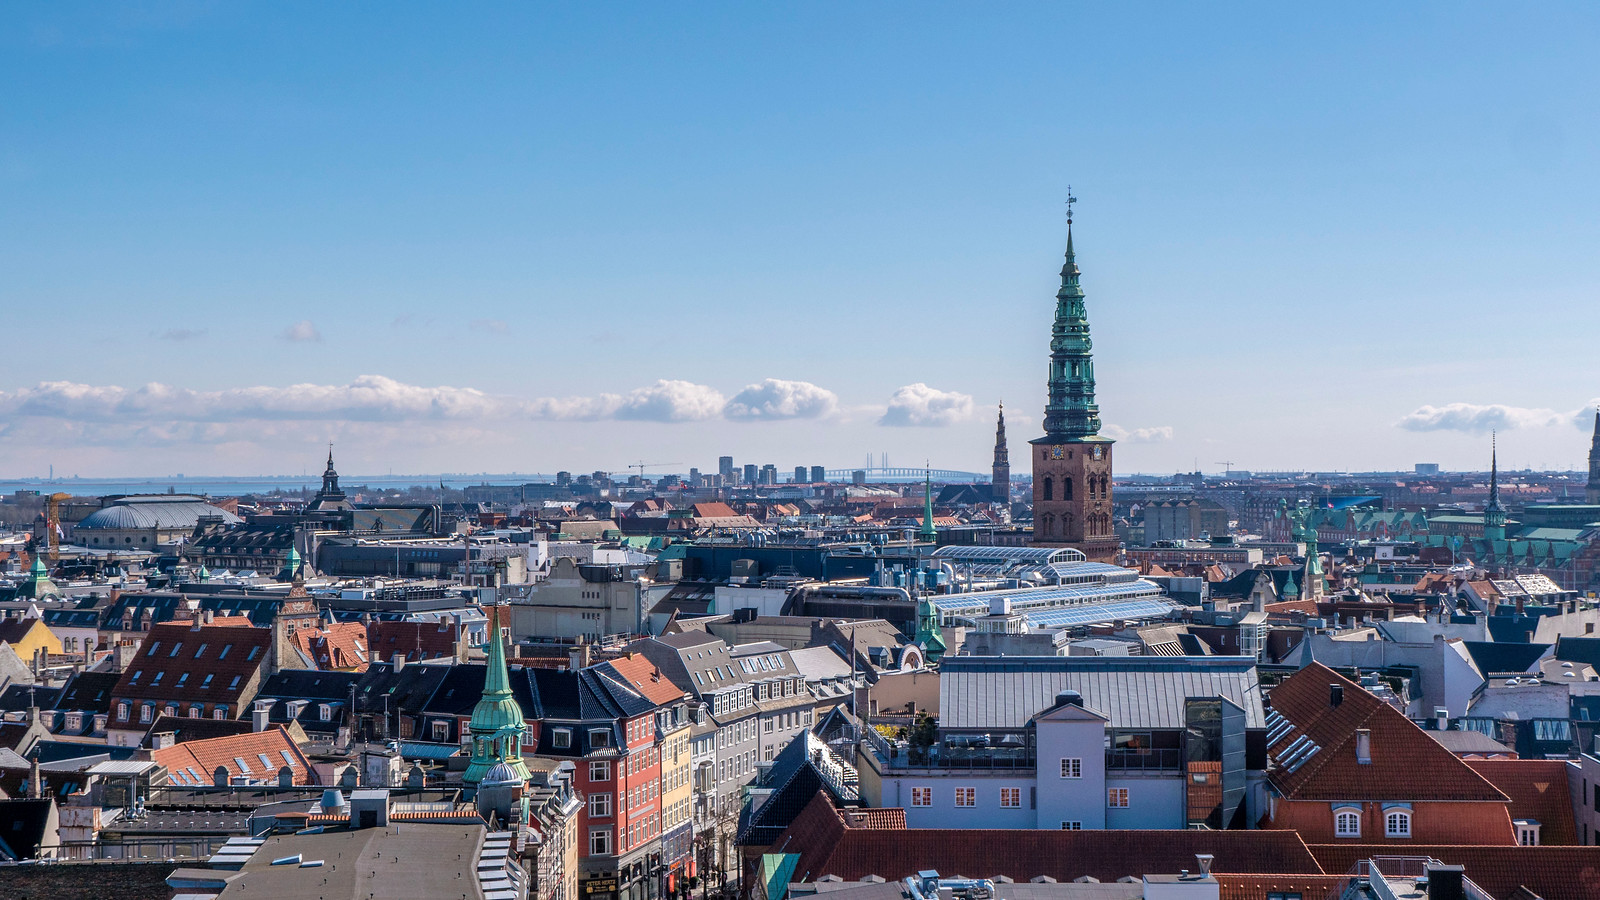 Rundetaarn or Round Tower in Copenhagen - 3 days in Copenhagen itinerary and Copenhagen travel guide